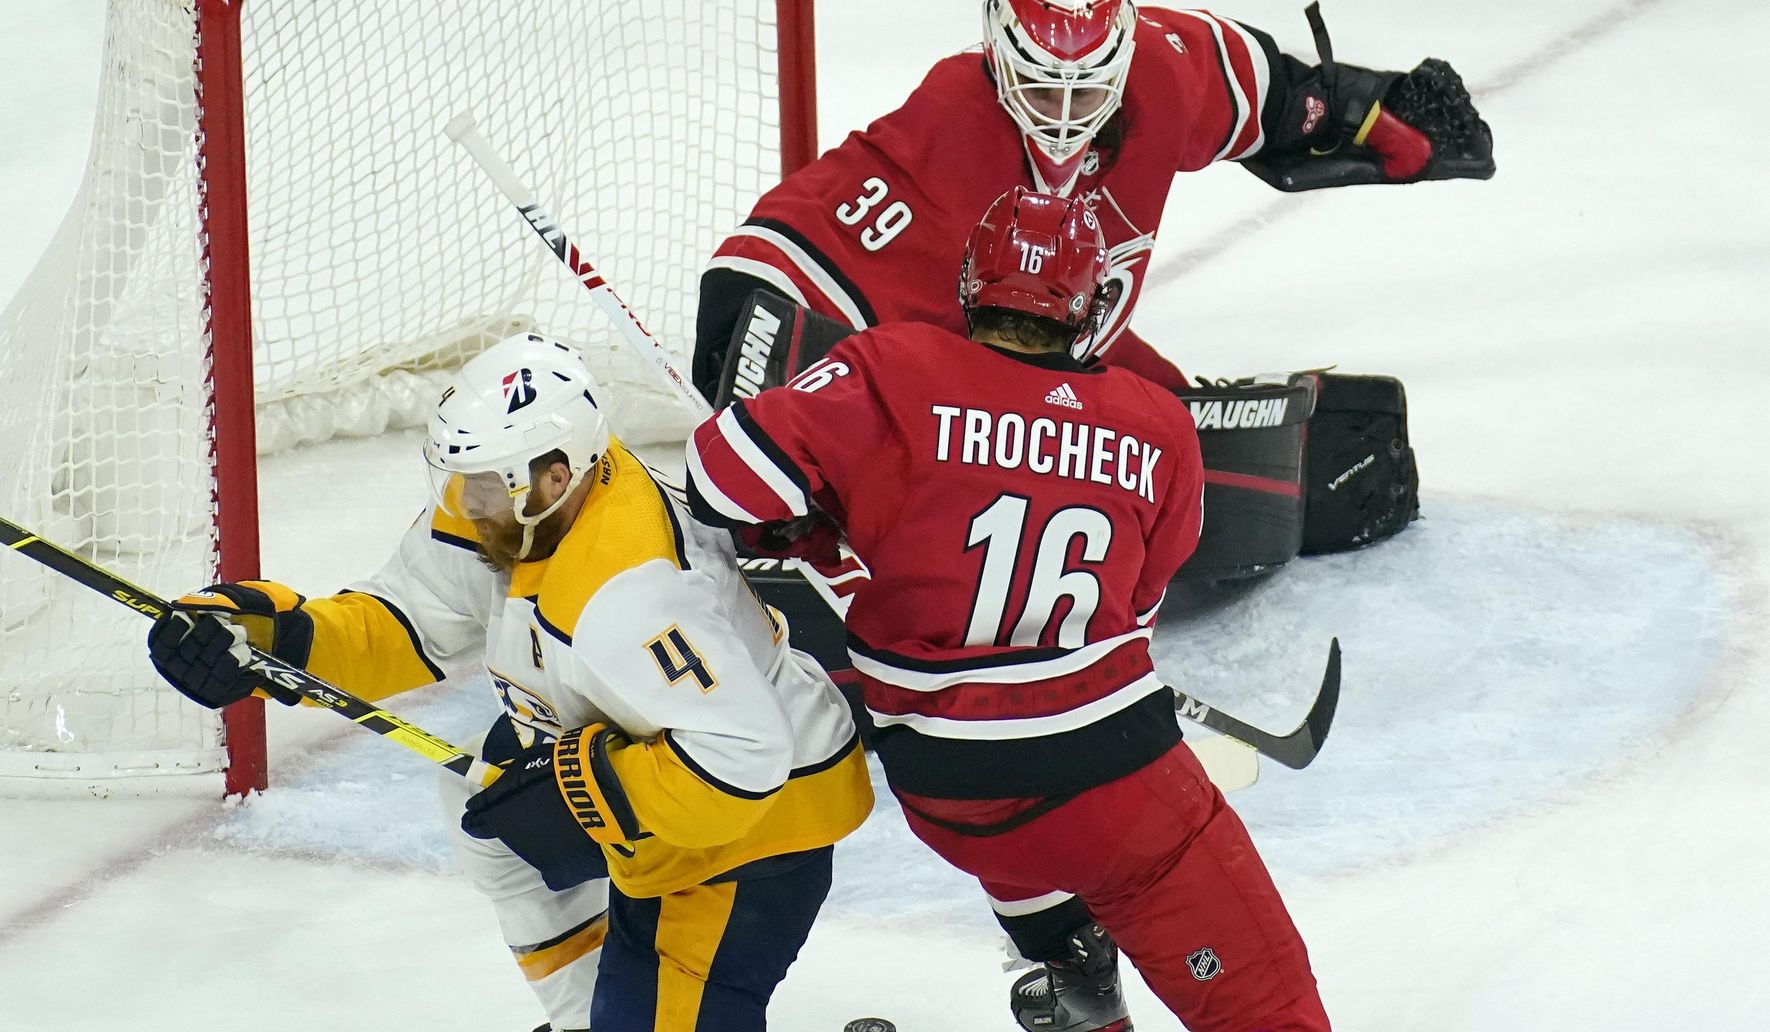 Predators_hurricanes_hockey_27754_c0-147-3528-2204_s1770x1032